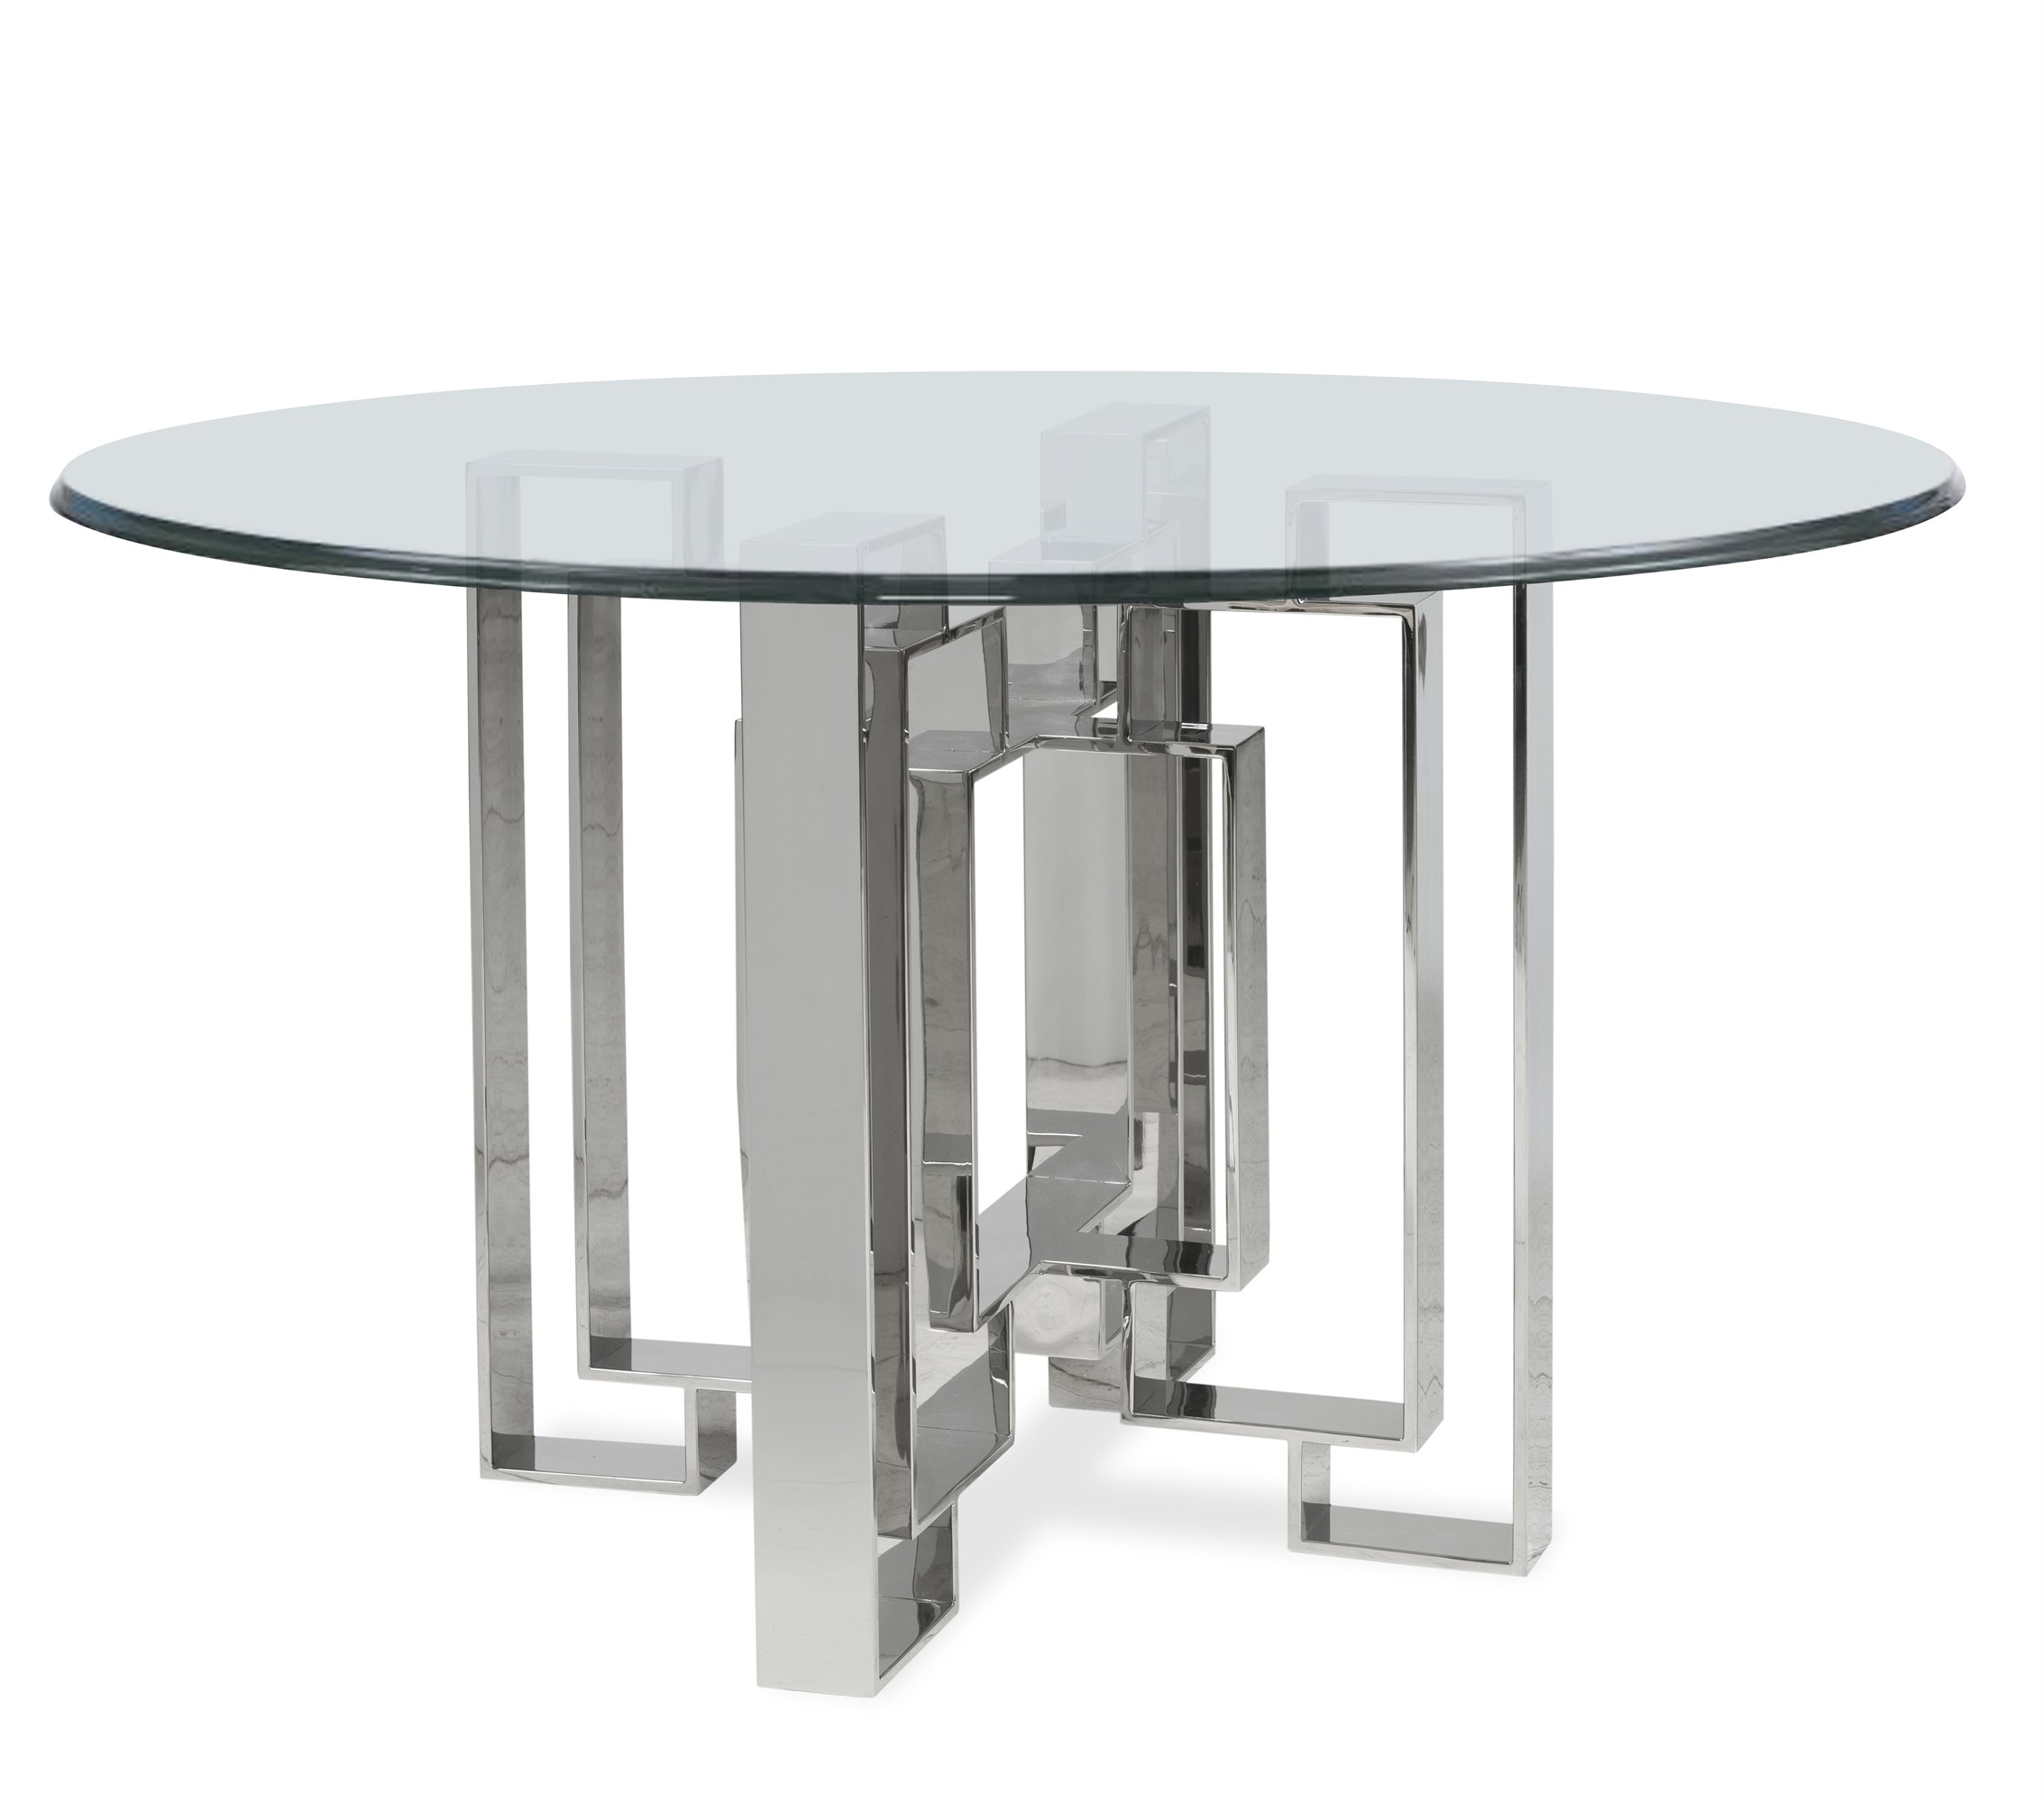 Fashionable Metal Dining Table Base Pertaining To Long Dining Tables With Polished Black Stainless Steel Base (View 25 of 30)